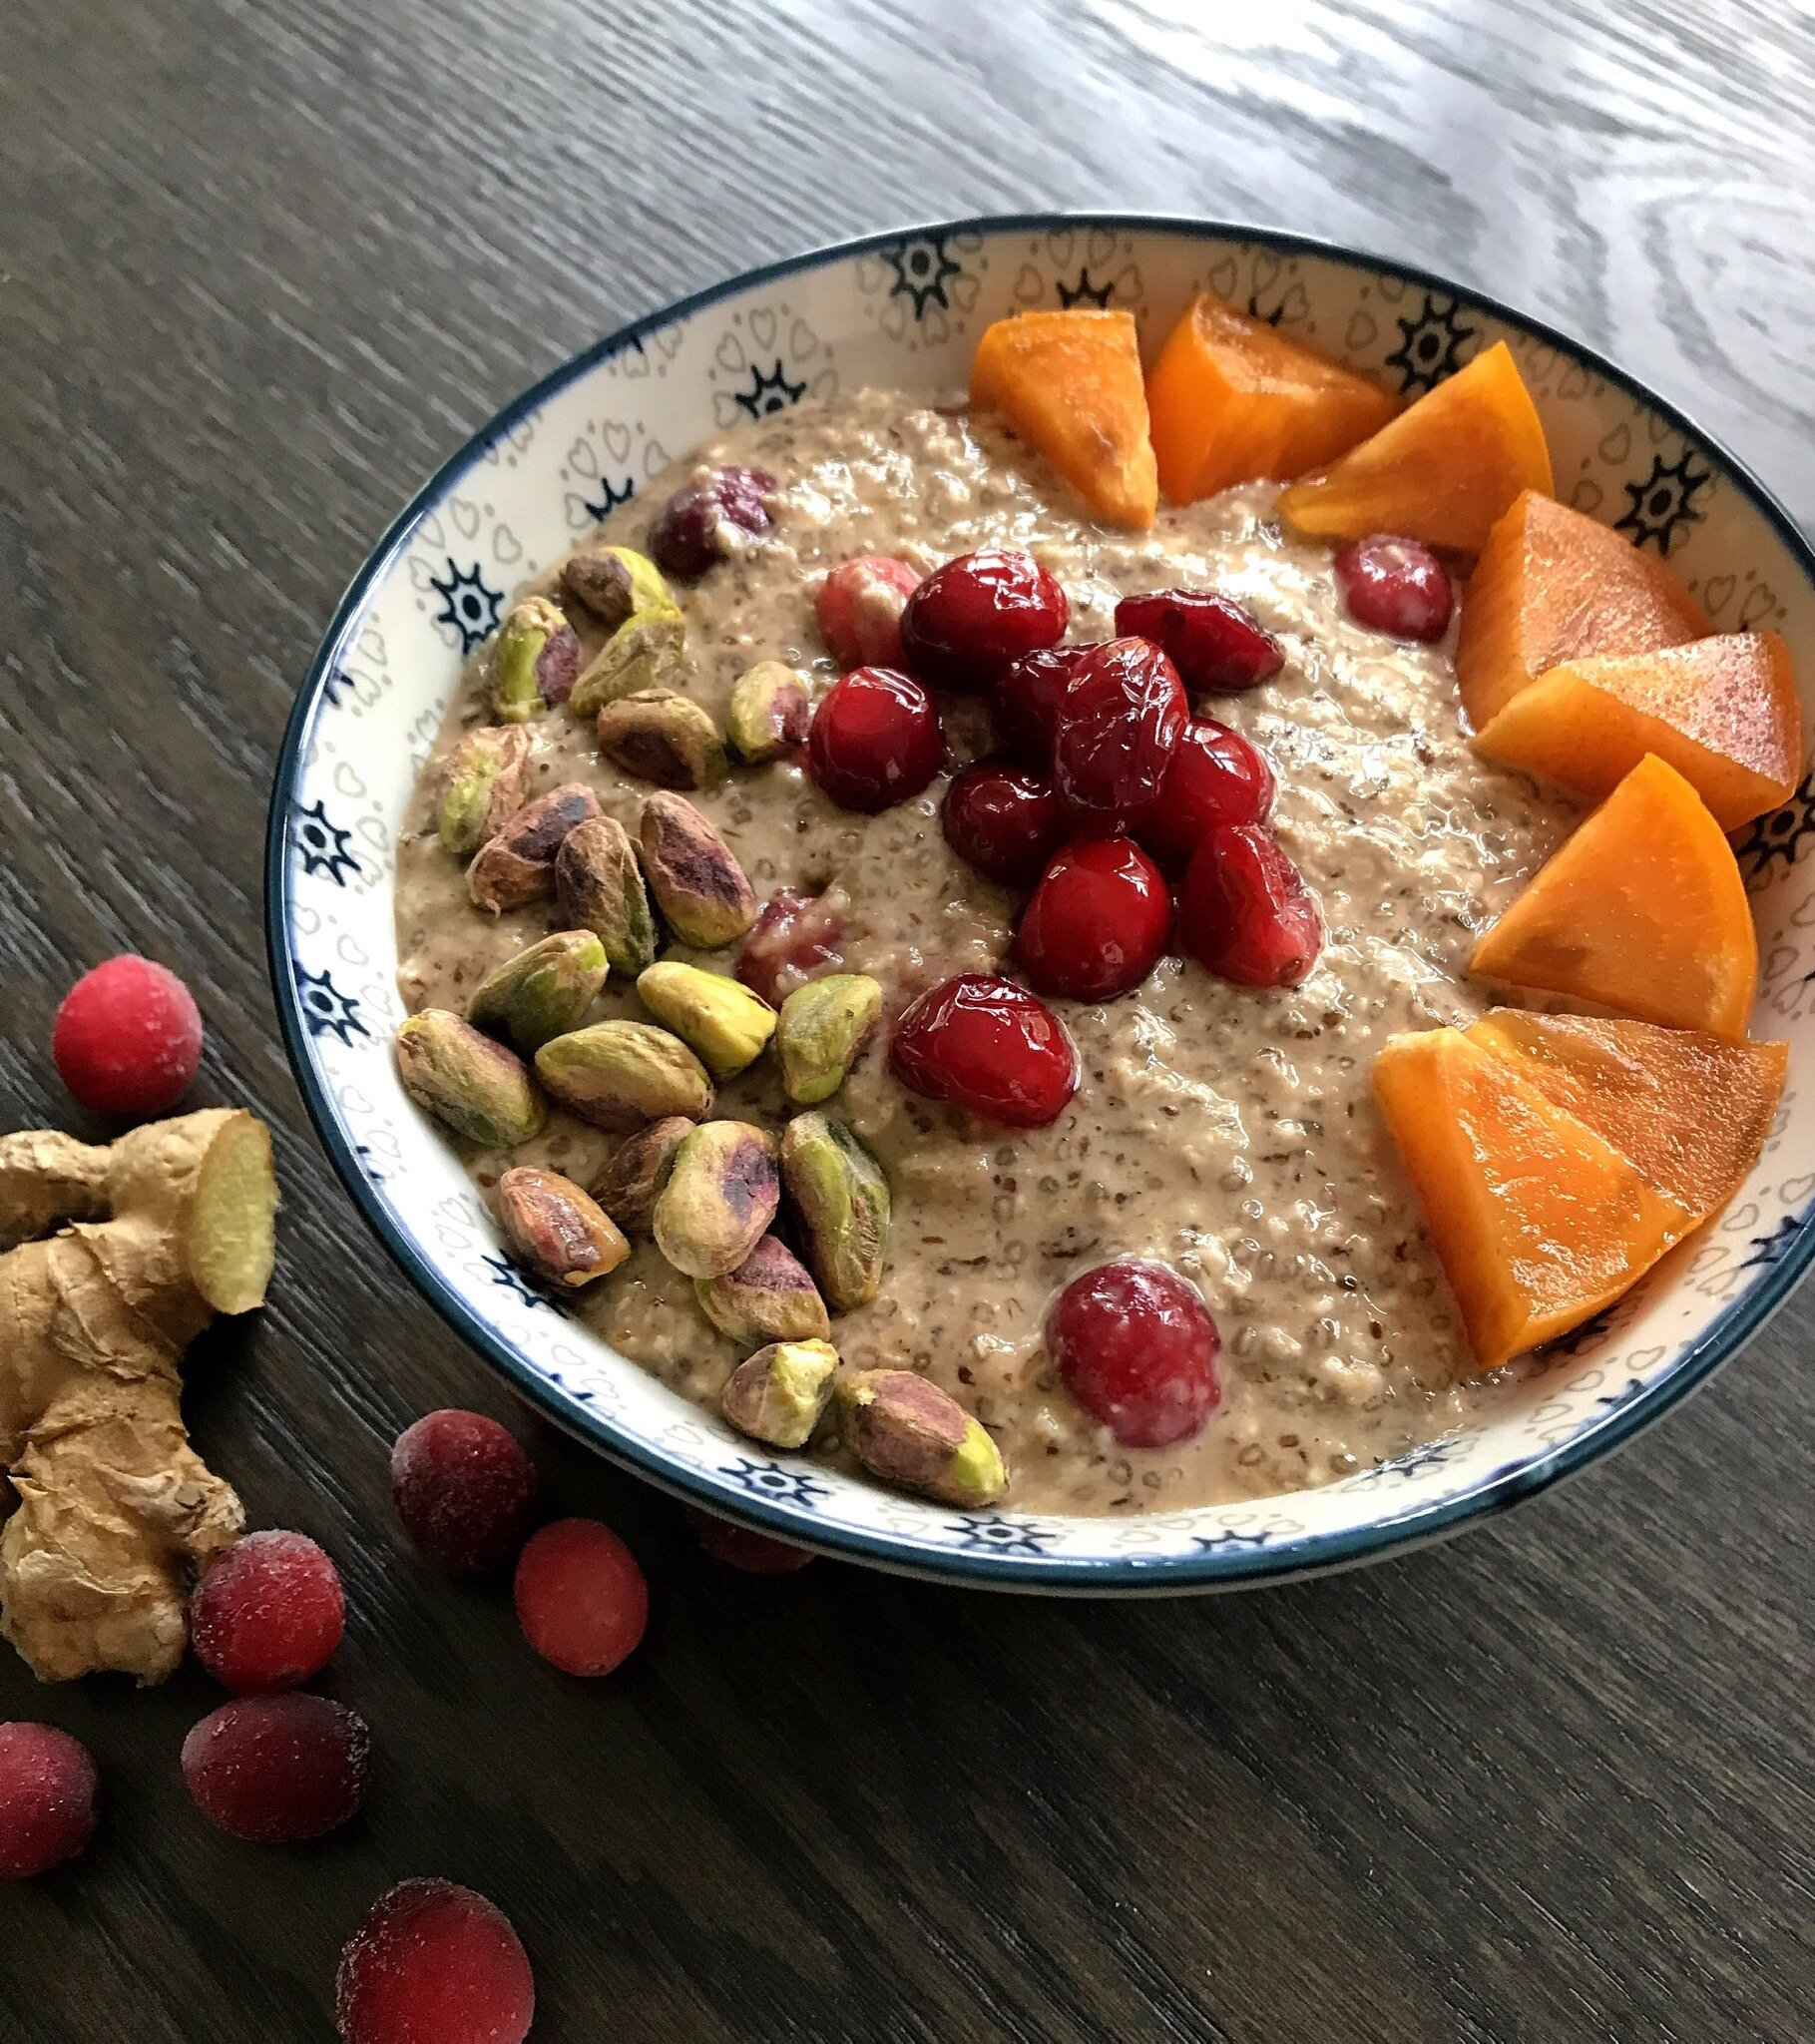 Cranberry Ginger Overnight Protein Oats topped with pistachios, diced persimmon, and warm cranberry compote (frozen berries heated with with  Beekeeper's Naturals  raw honey or pure maple syrup).